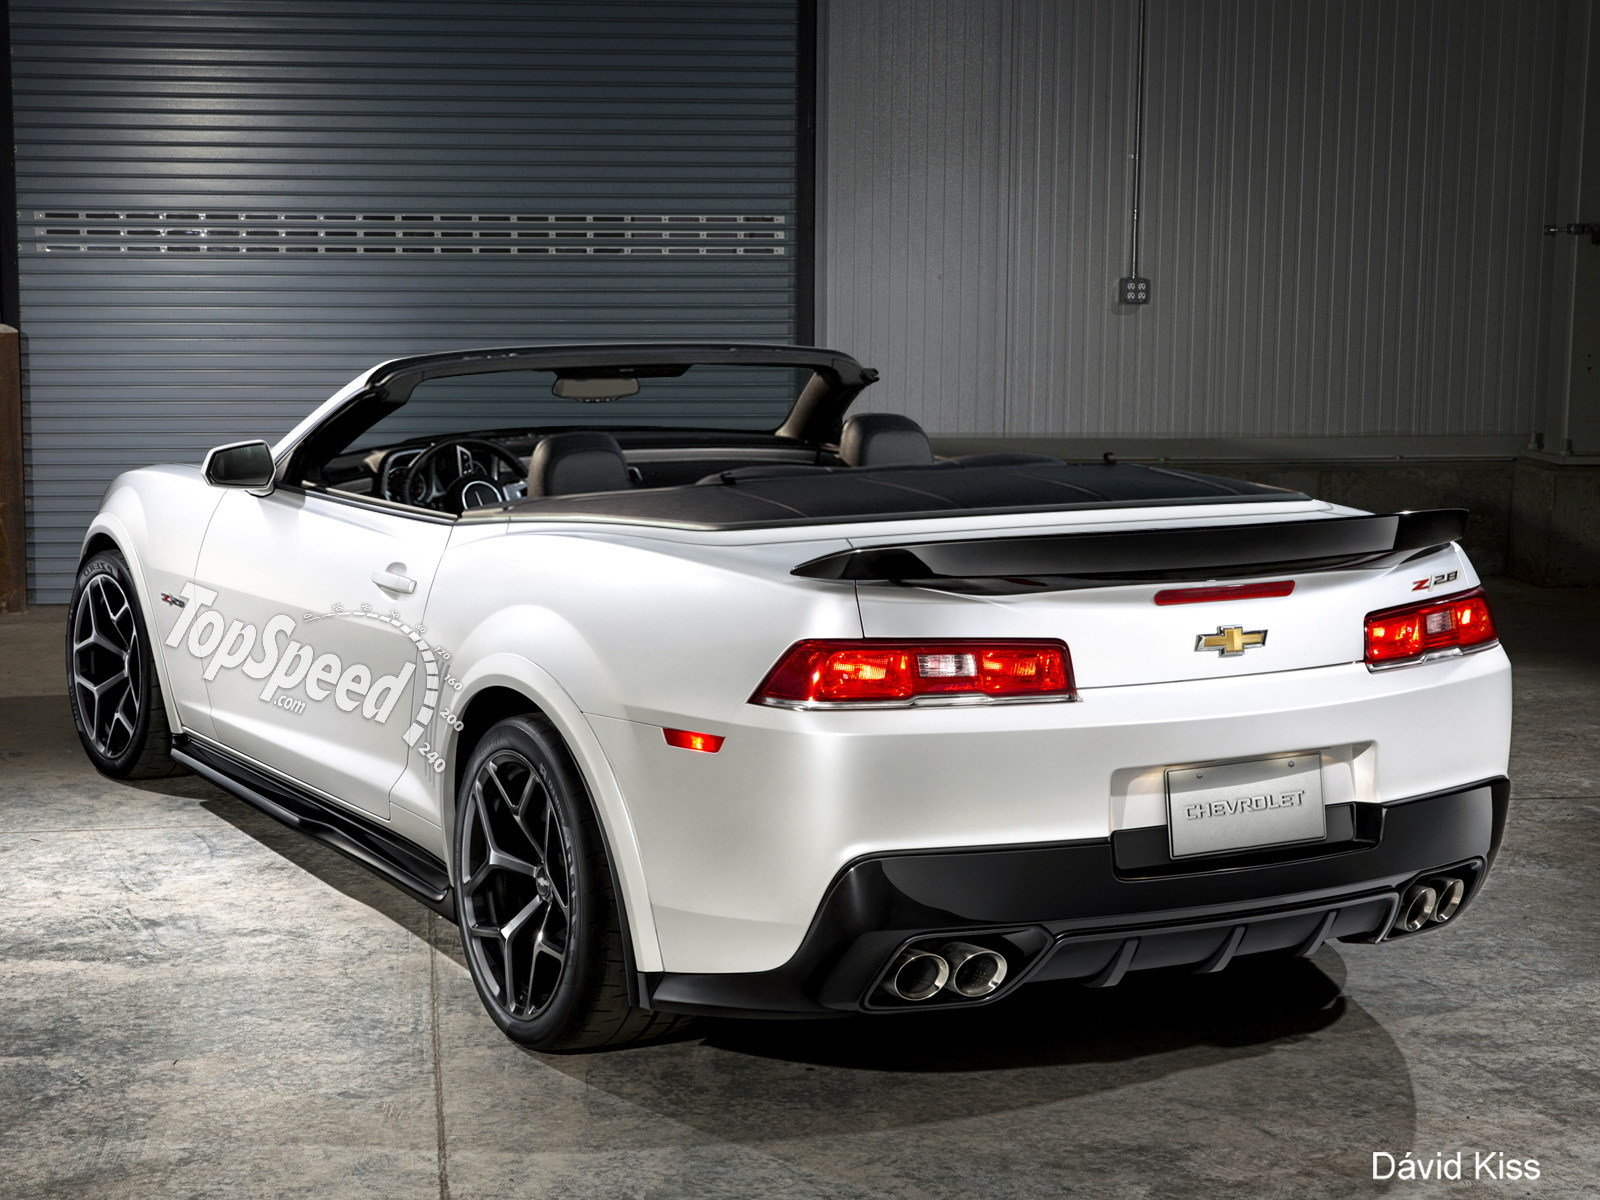 2015 Chevrolet Camaro Z 28 Convertible Top Speed